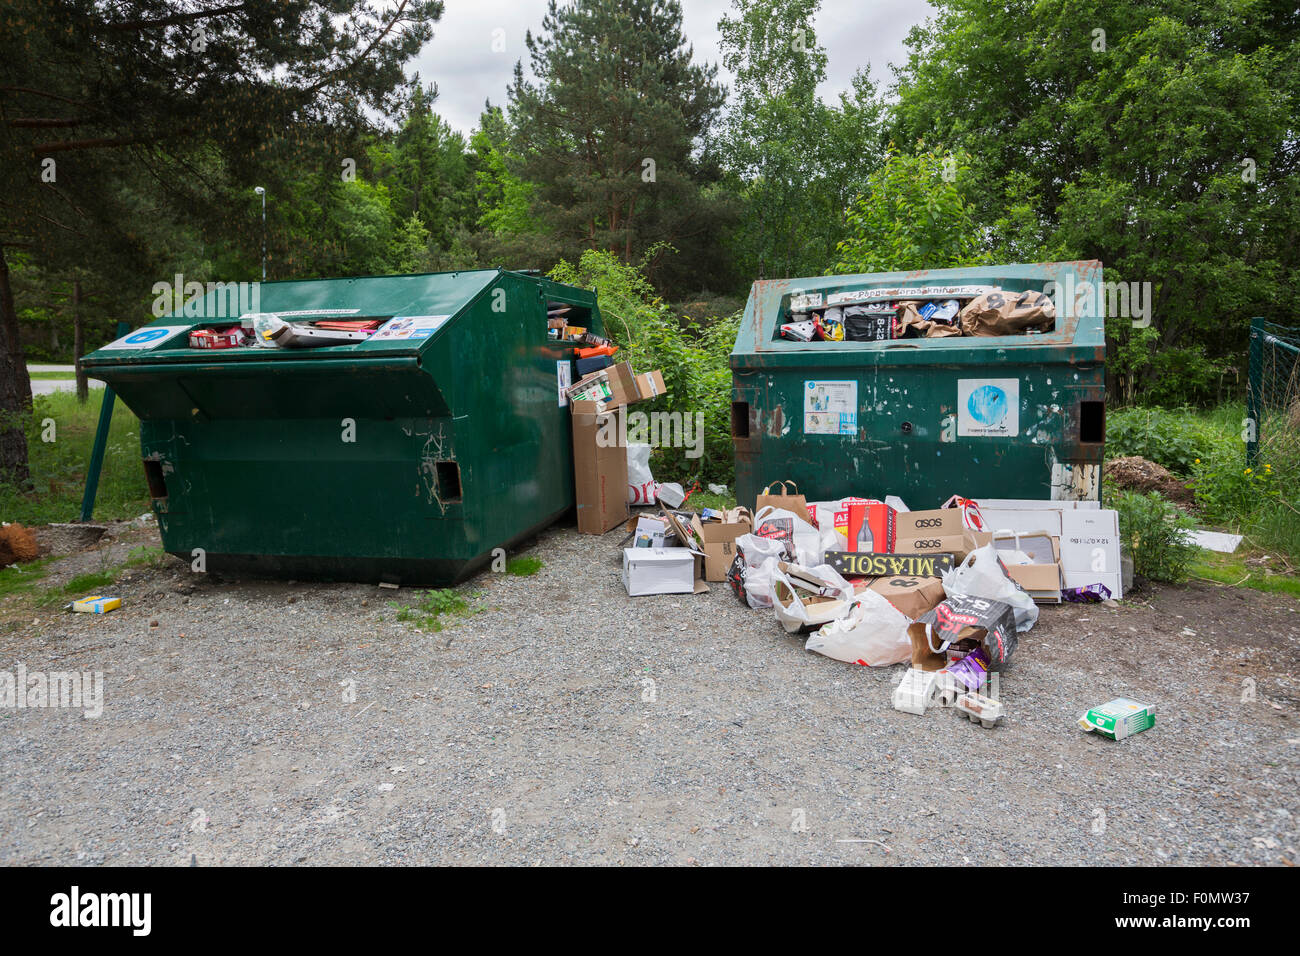 Garbage Containers Full, Overflowing - Stock Image